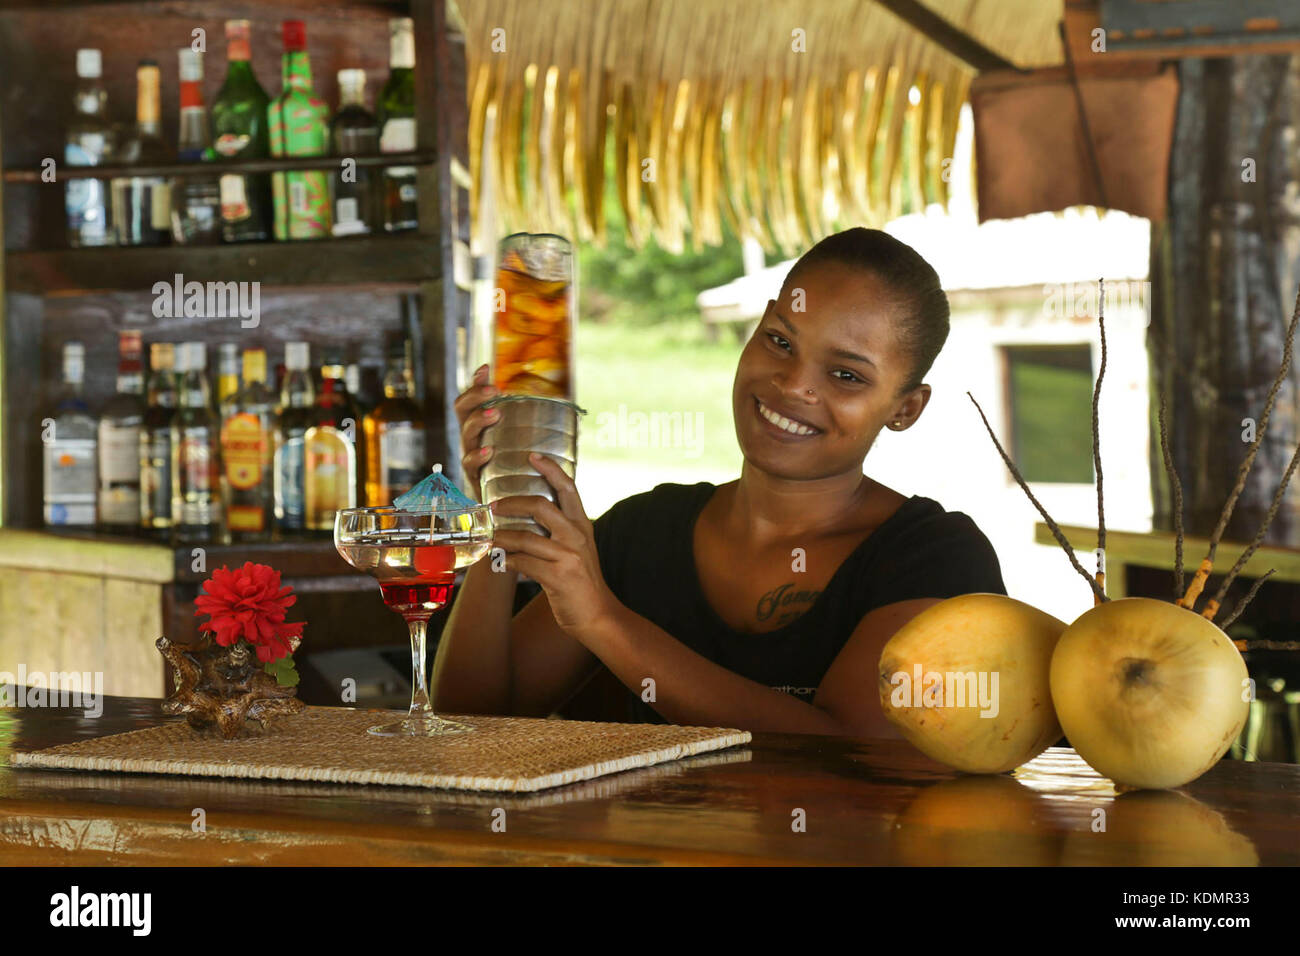 Tropical Bartender Shaking Cocktail, Caribbean Stock Photo